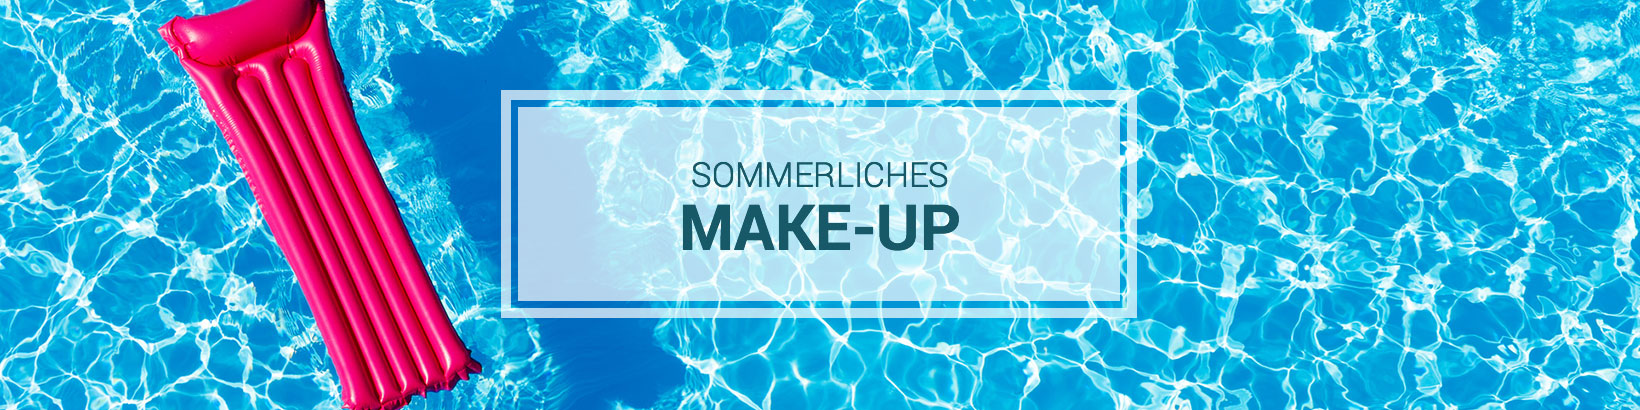 visual-sommerwelt-make-up-header